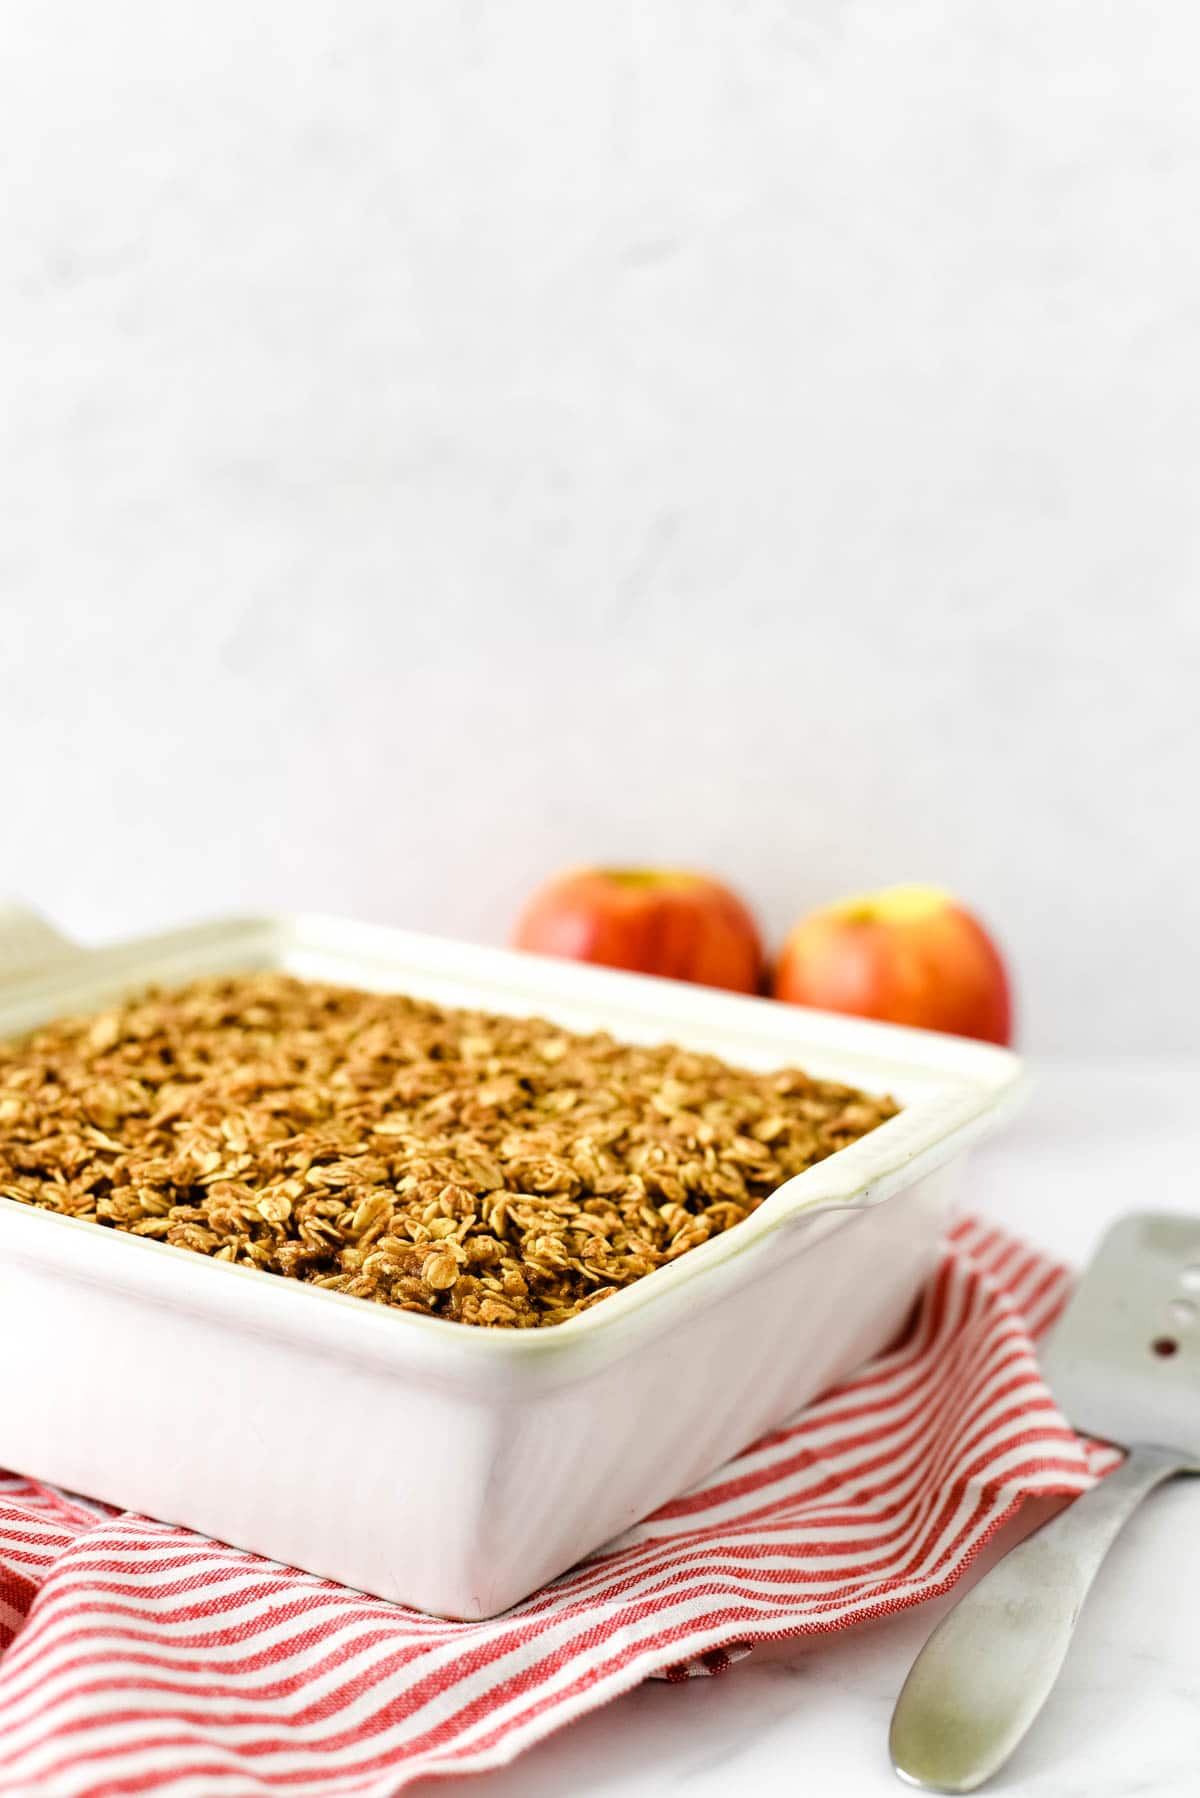 white square baking dish with baked oatmeal and two apples behind